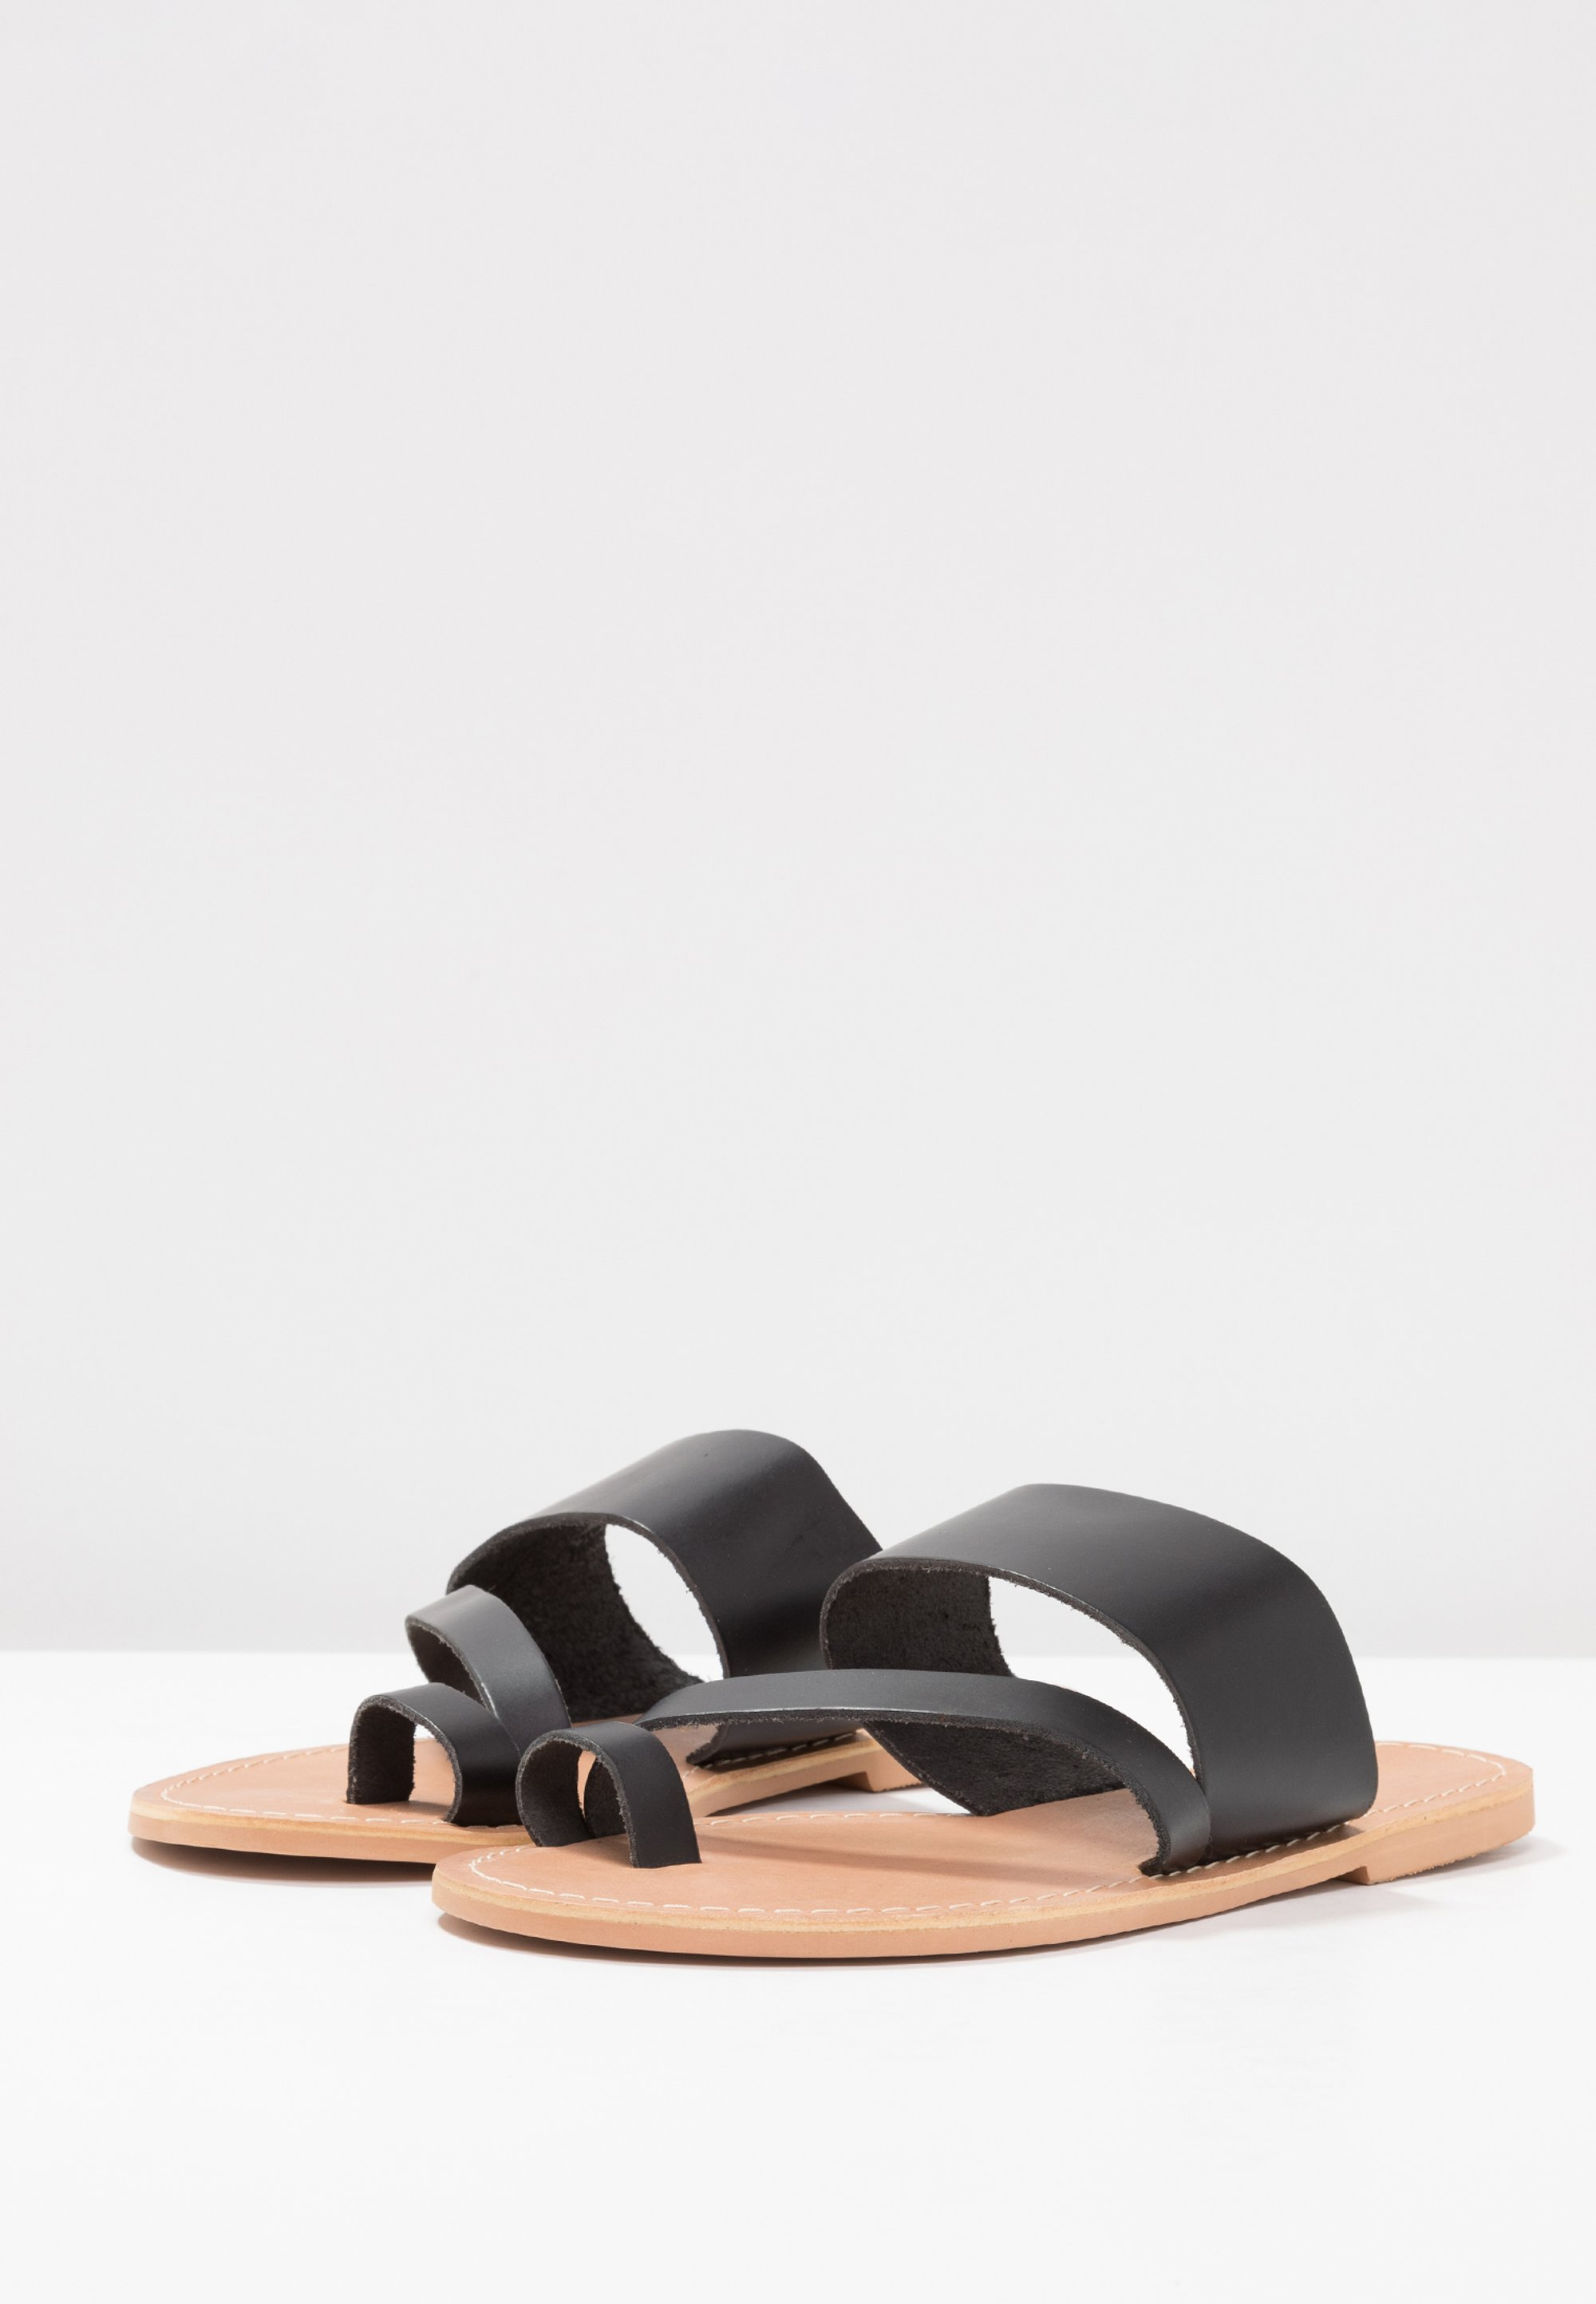 T-bar sandals by Topshop Wide Fit